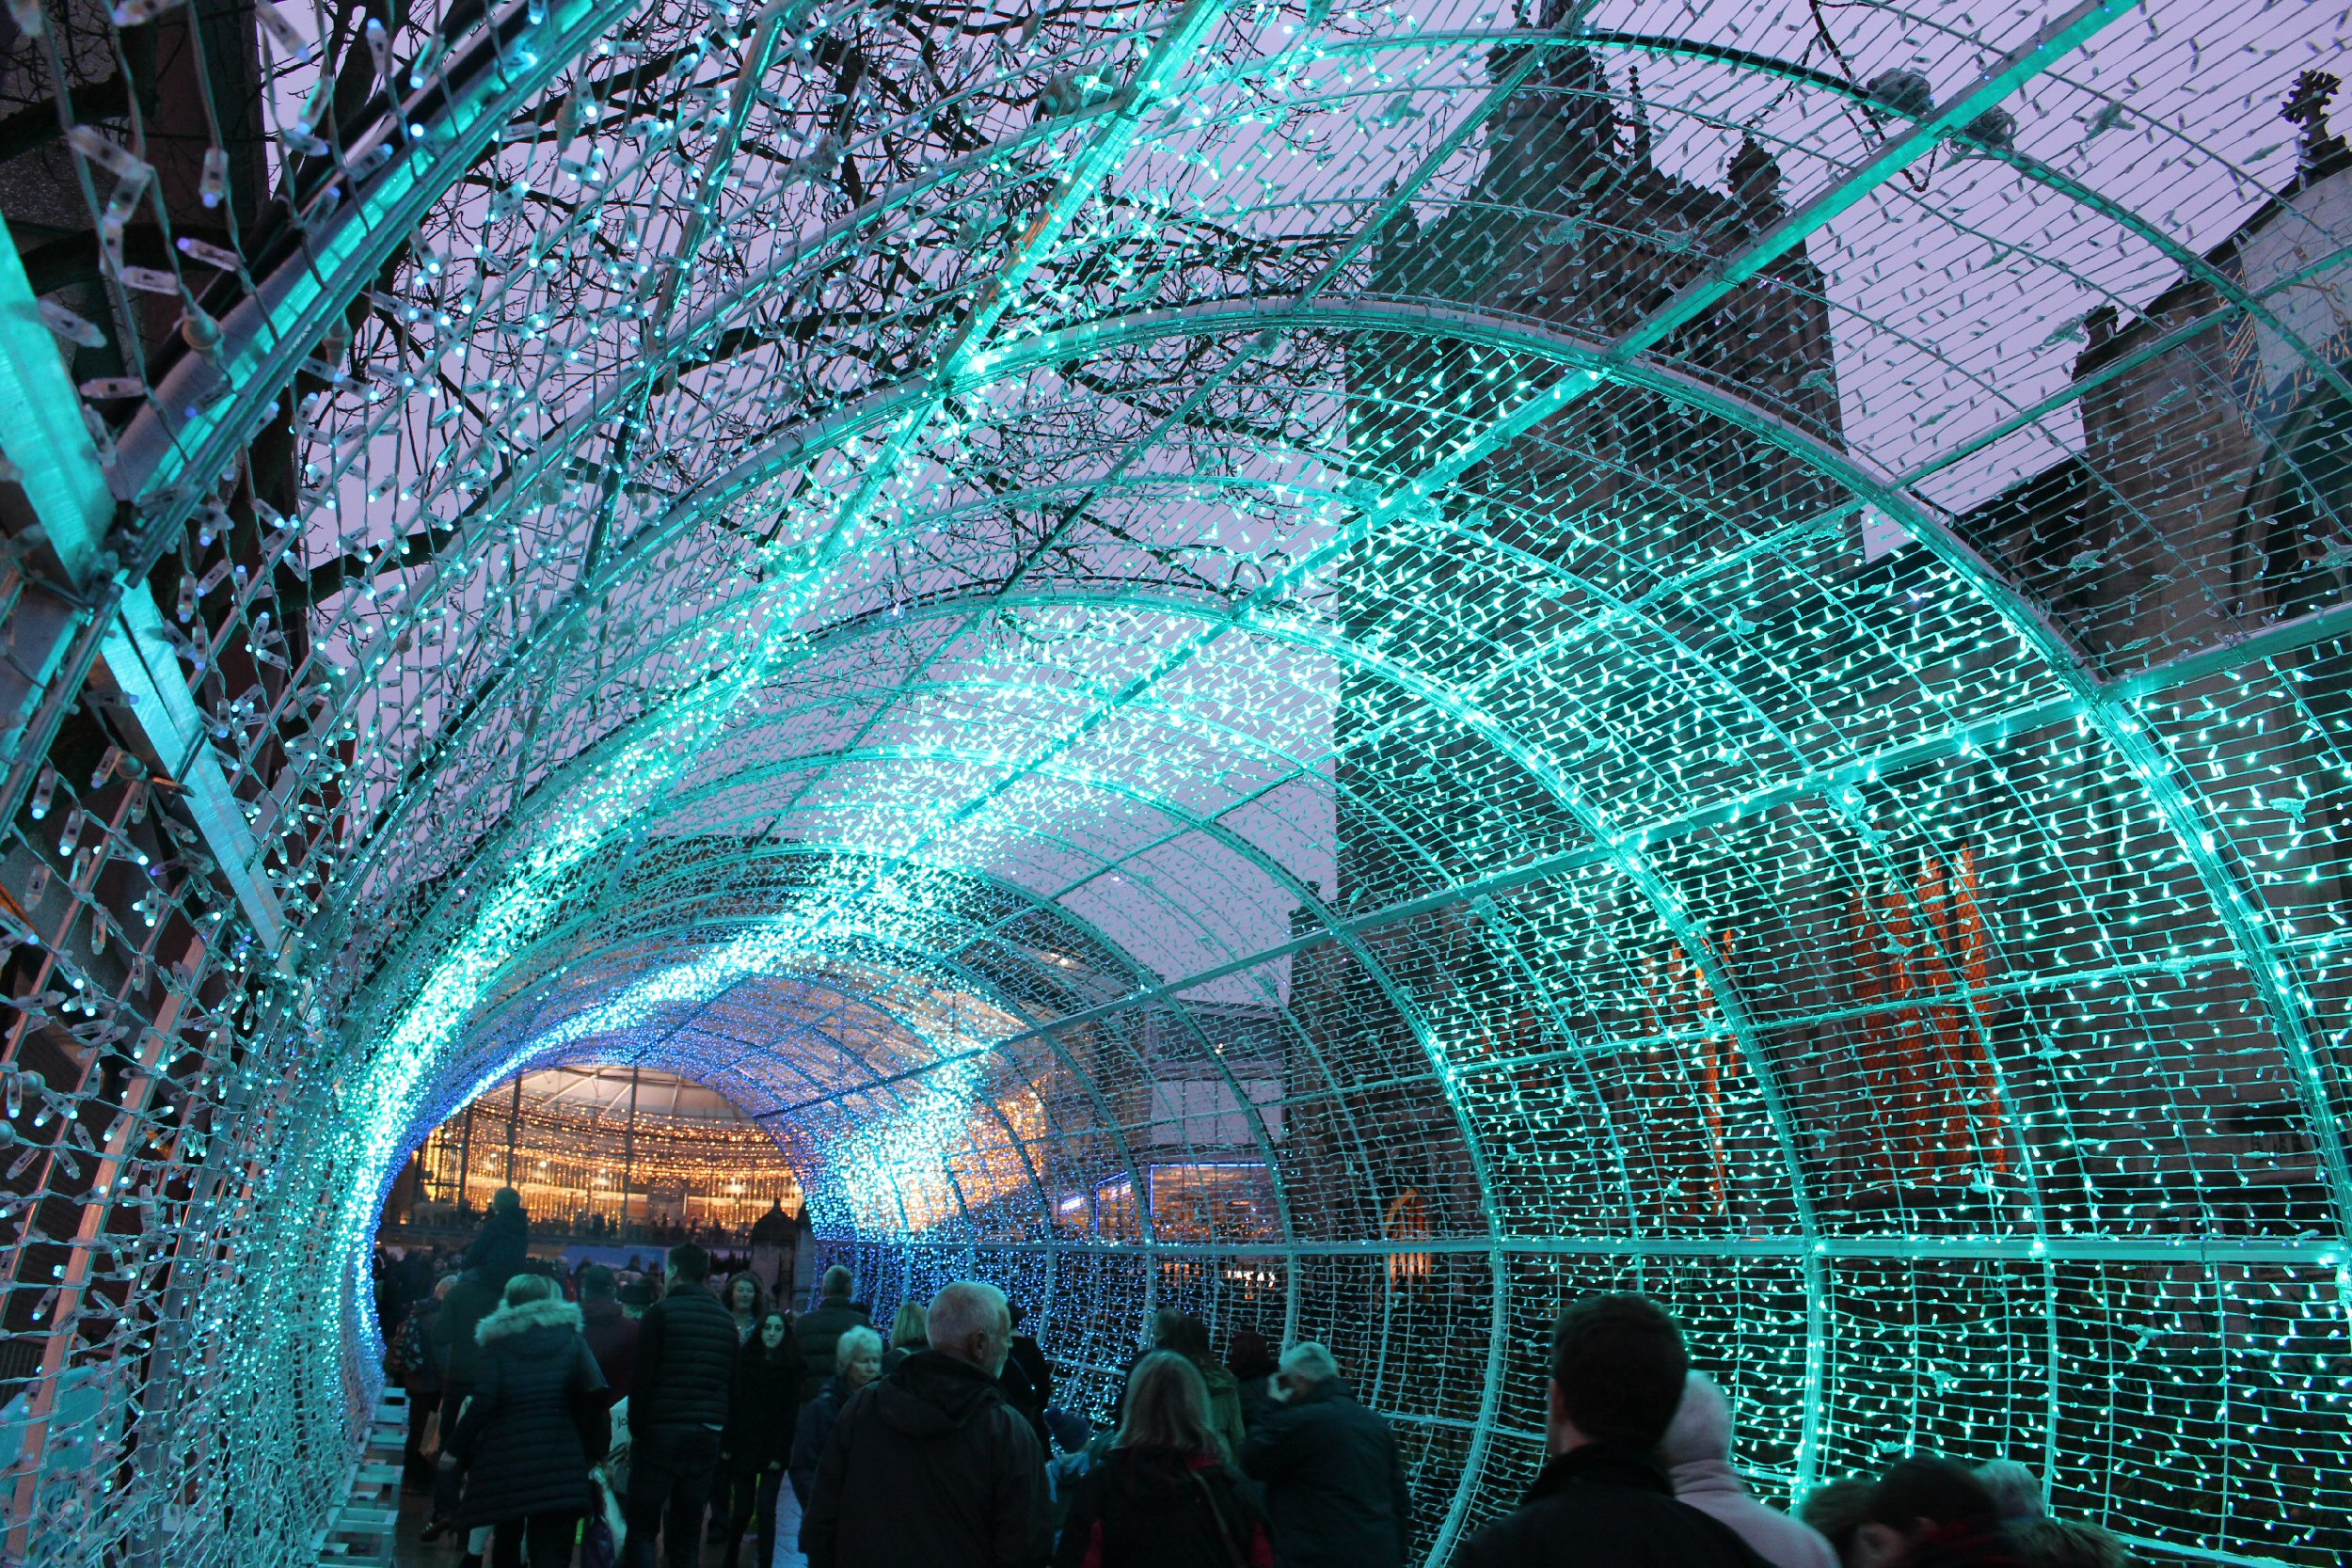 A unique light tunnel - Norwich Tunnel of Lights, easily accessible from London